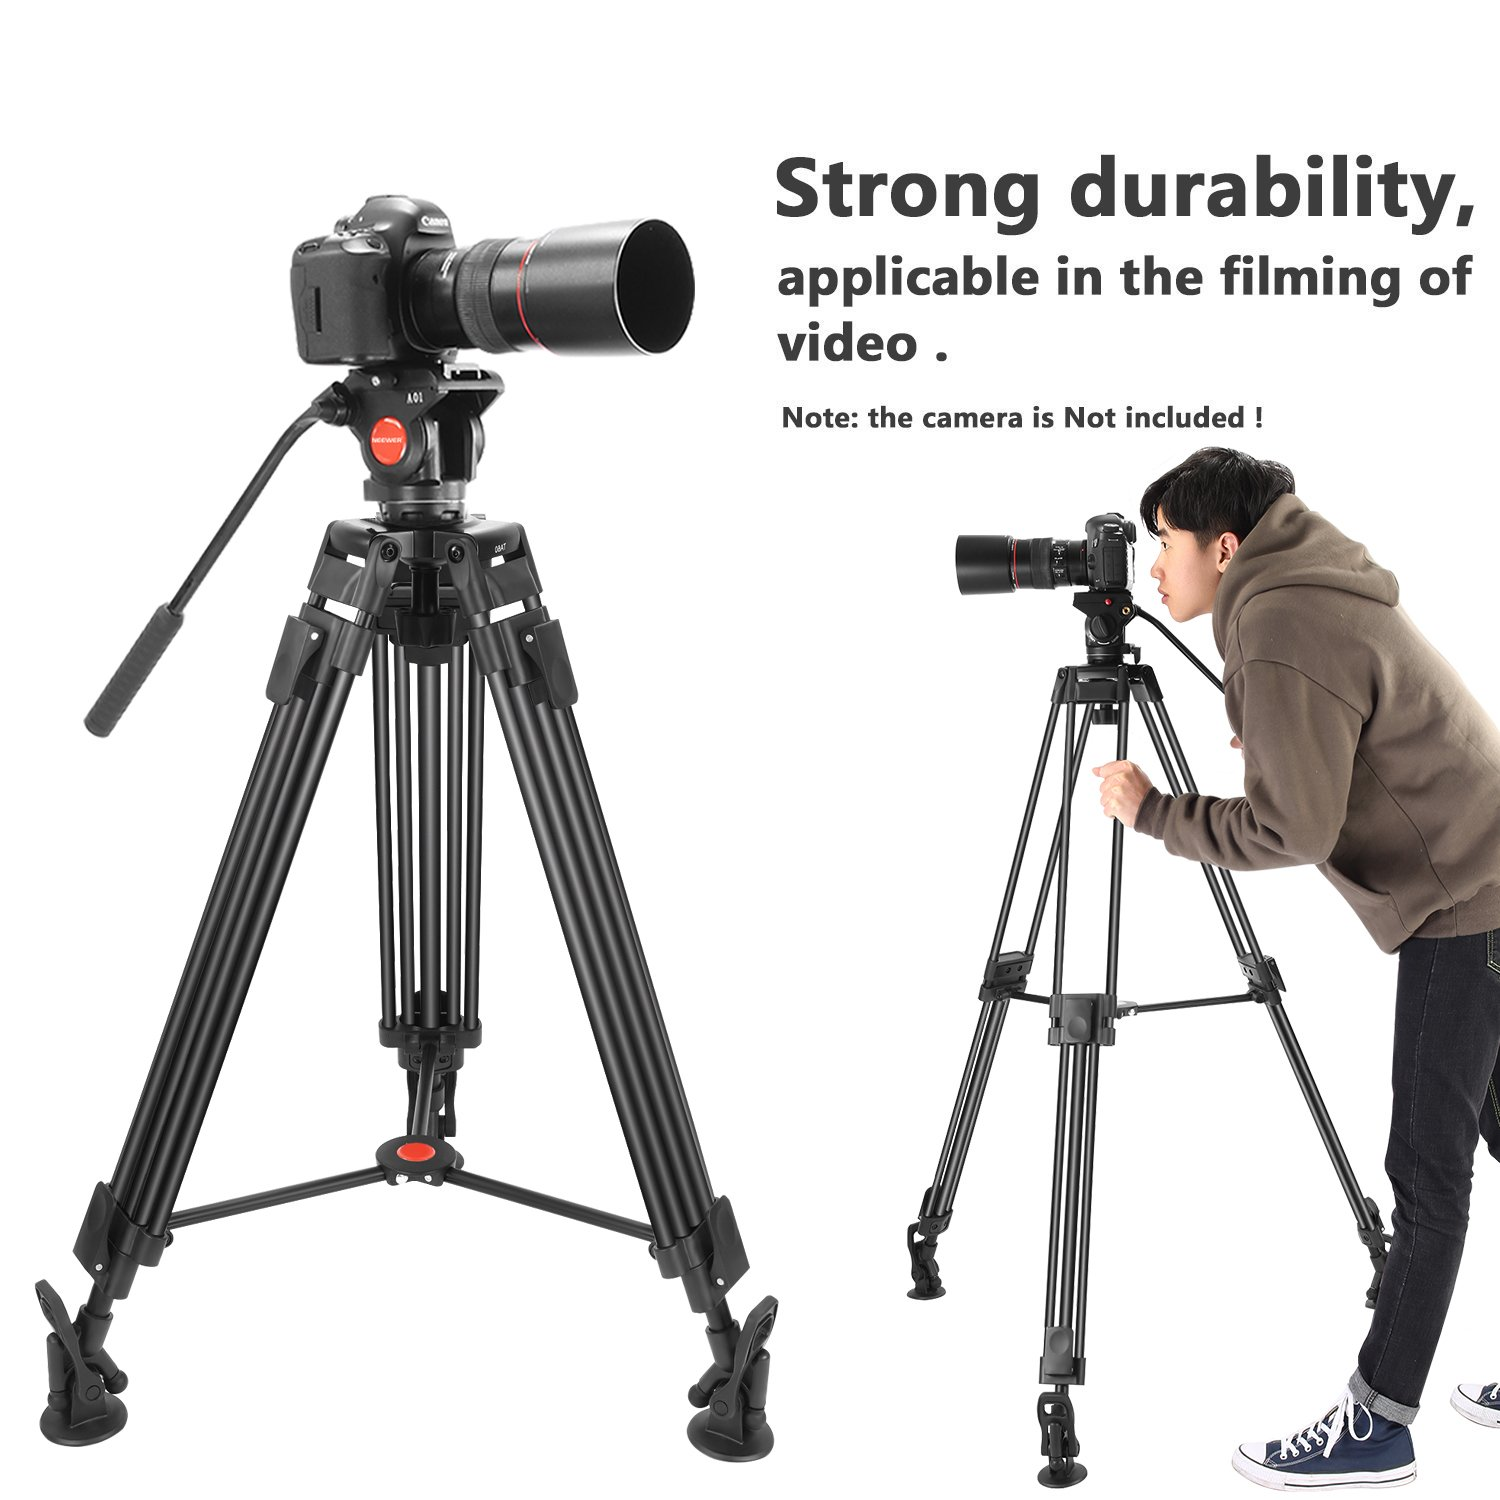 Neewer Professional Heavy Duty Video Camera Tripod,64 inches/163 Centimeters Aluminum Alloy with 360 Degree Fluid Drag Head,1/4 and 3/8-inch Quick Shoe Plate,Bag,Load up to 17.6 pounds/8 kilograms by Neewer